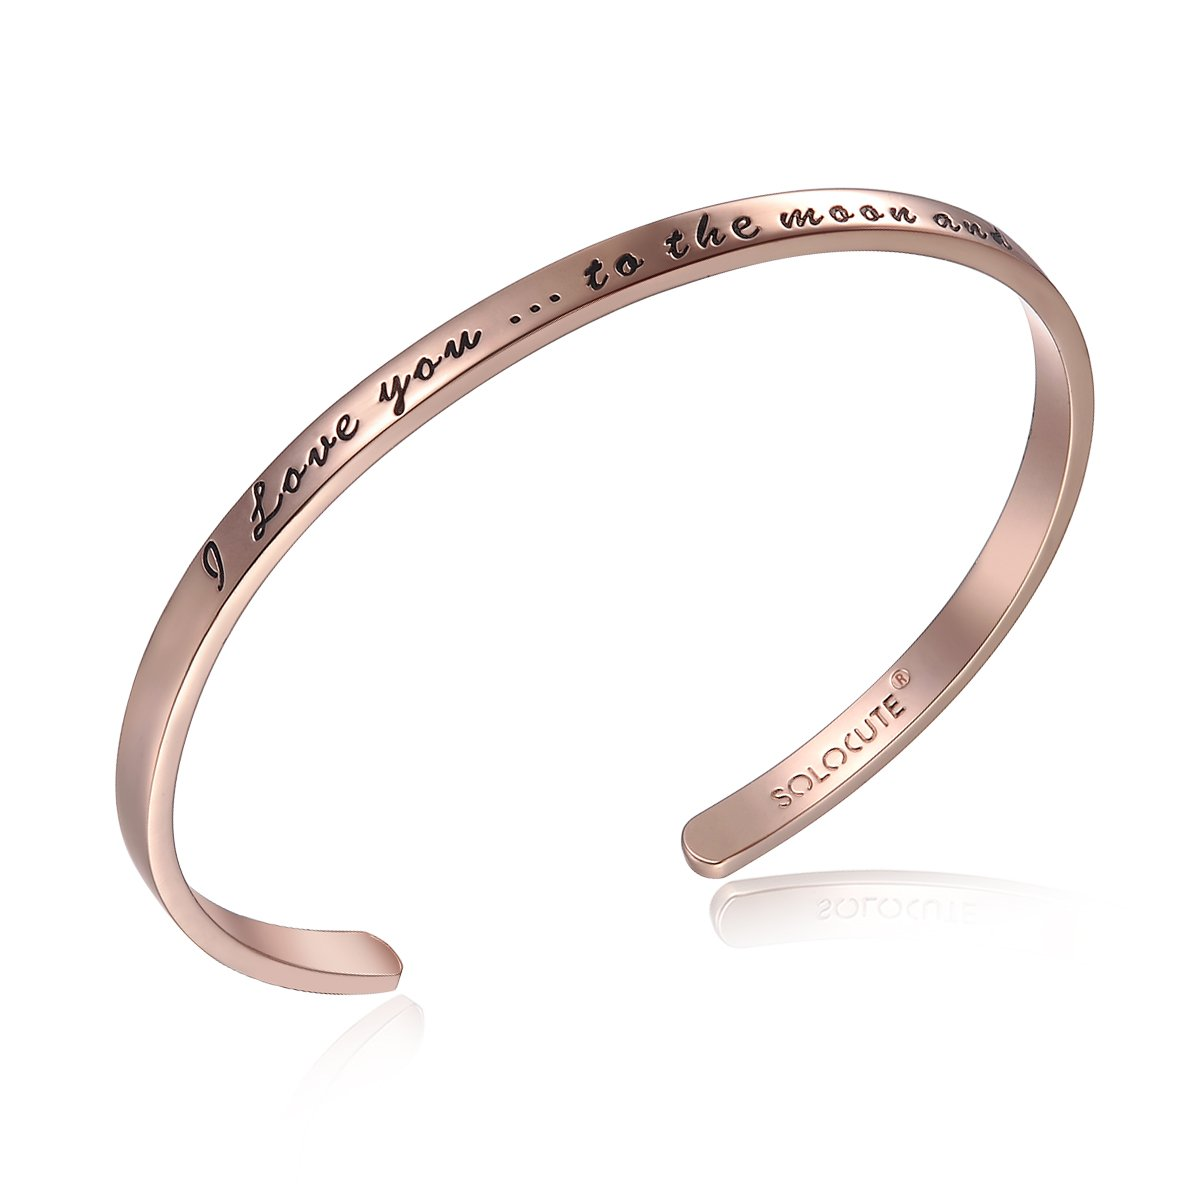 mens inscribed personalised chamfered bracelet personalisedengraved sterling engraved hallmarked curb silver identity id